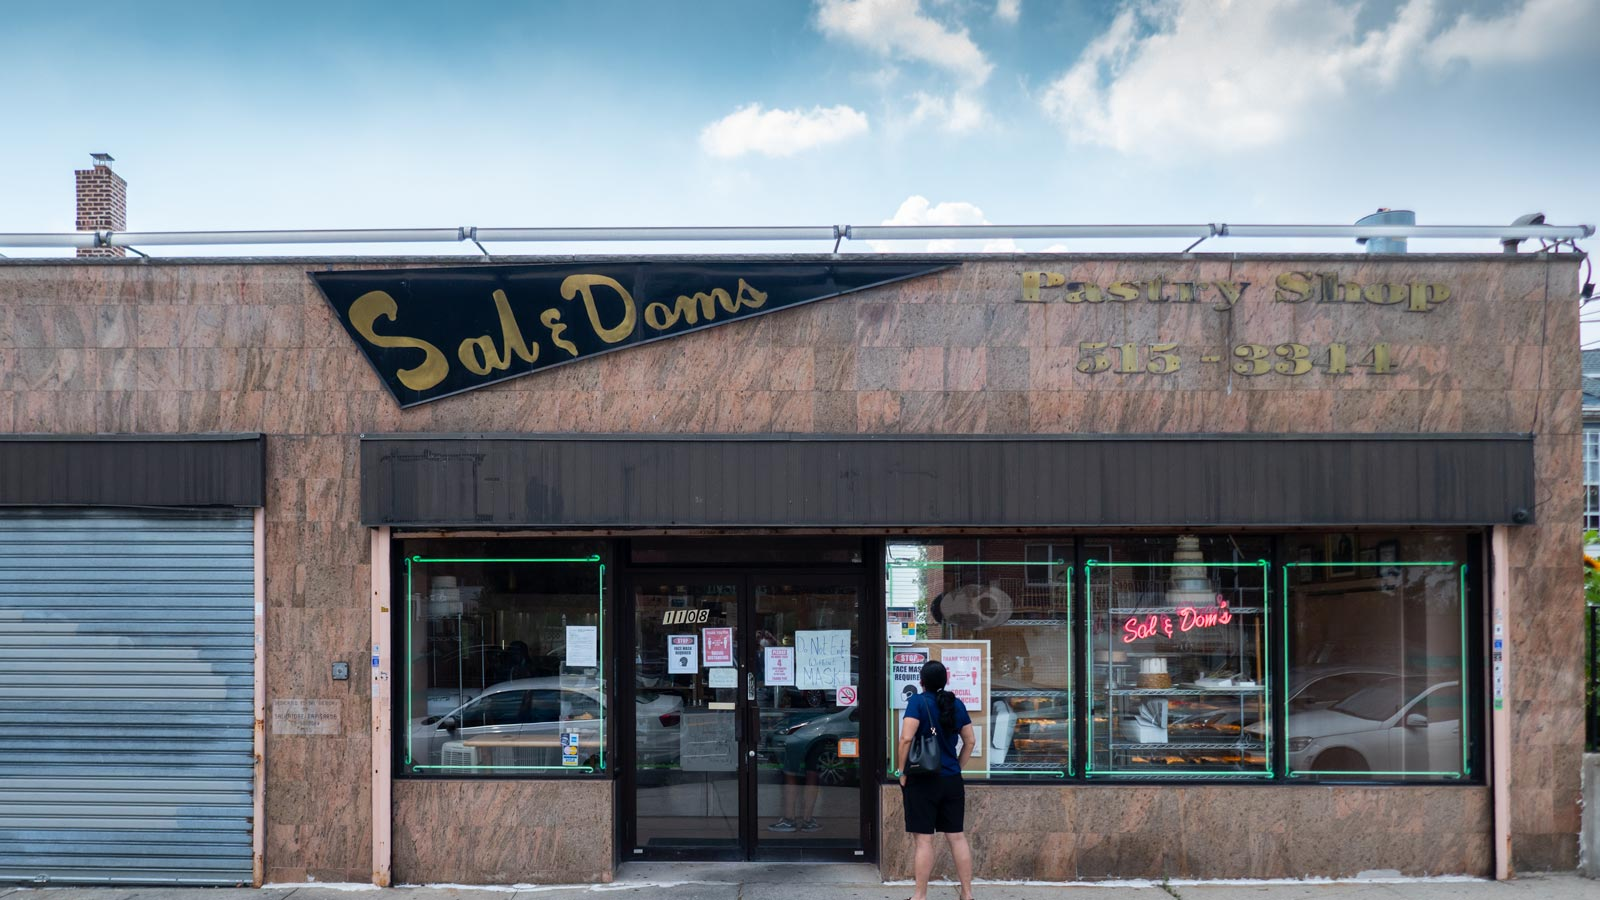 Sal & Dom's Pastry Shop Bronx NYC